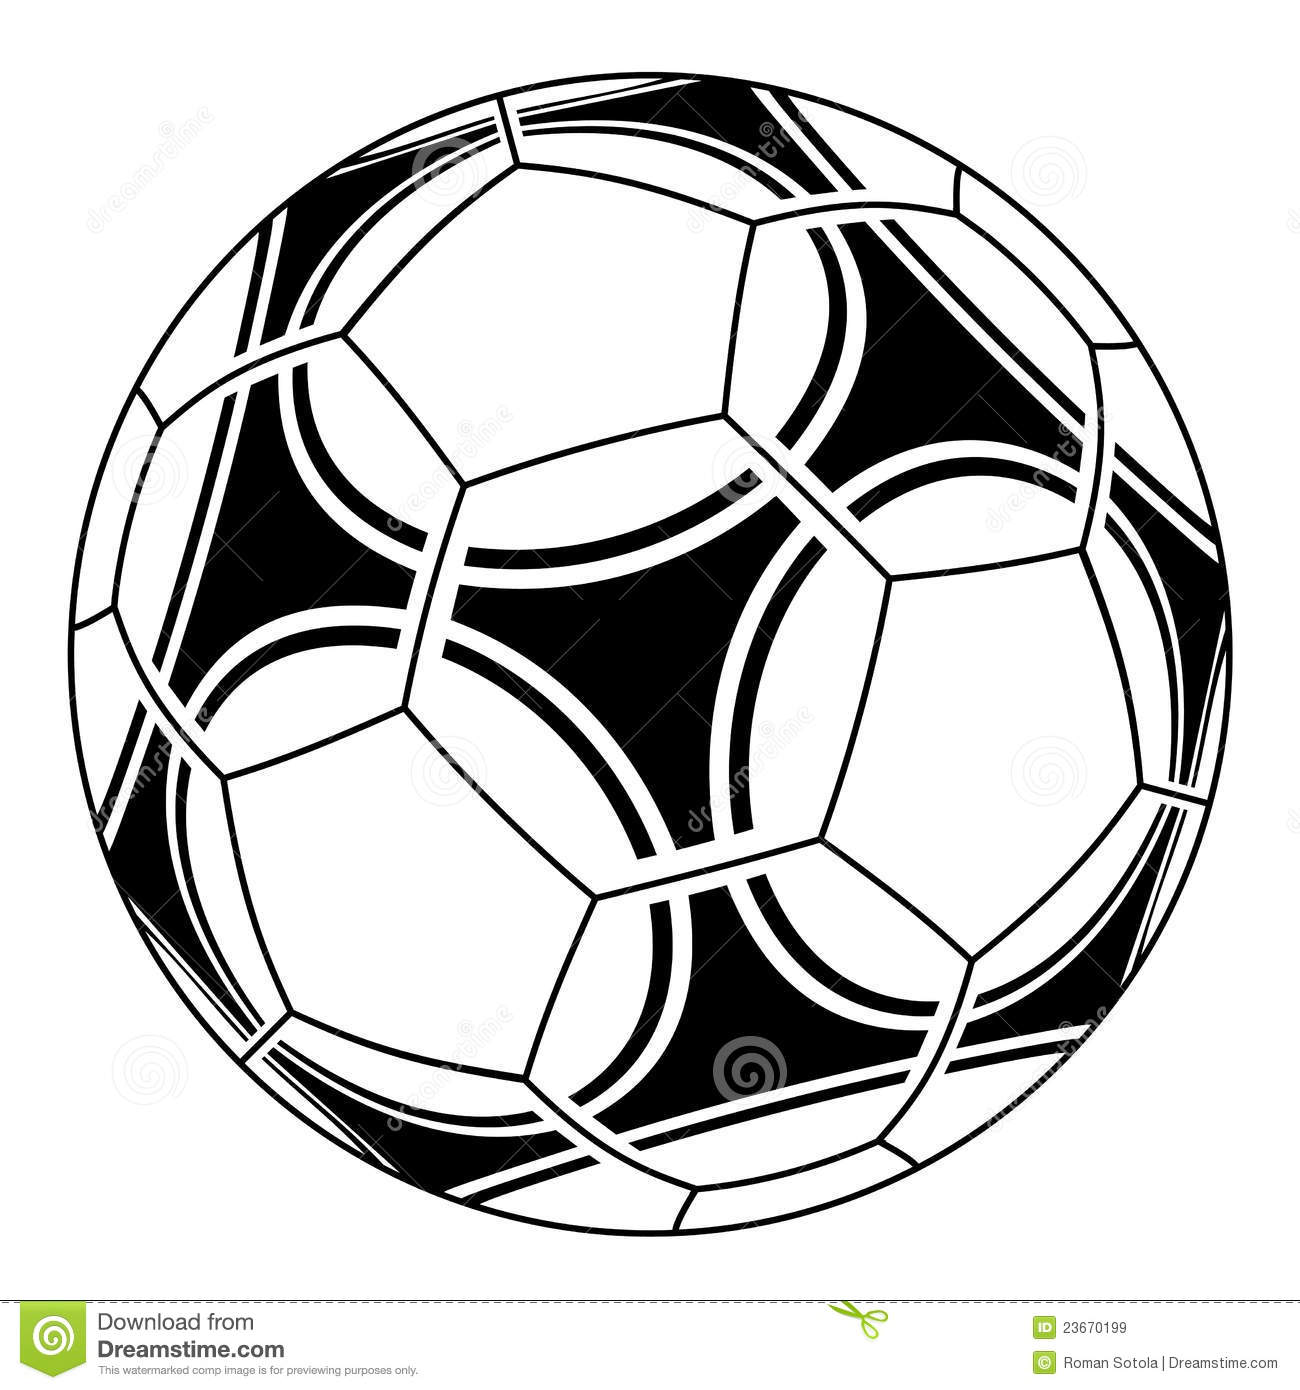 cool soccer balls coloring pages - photo#27